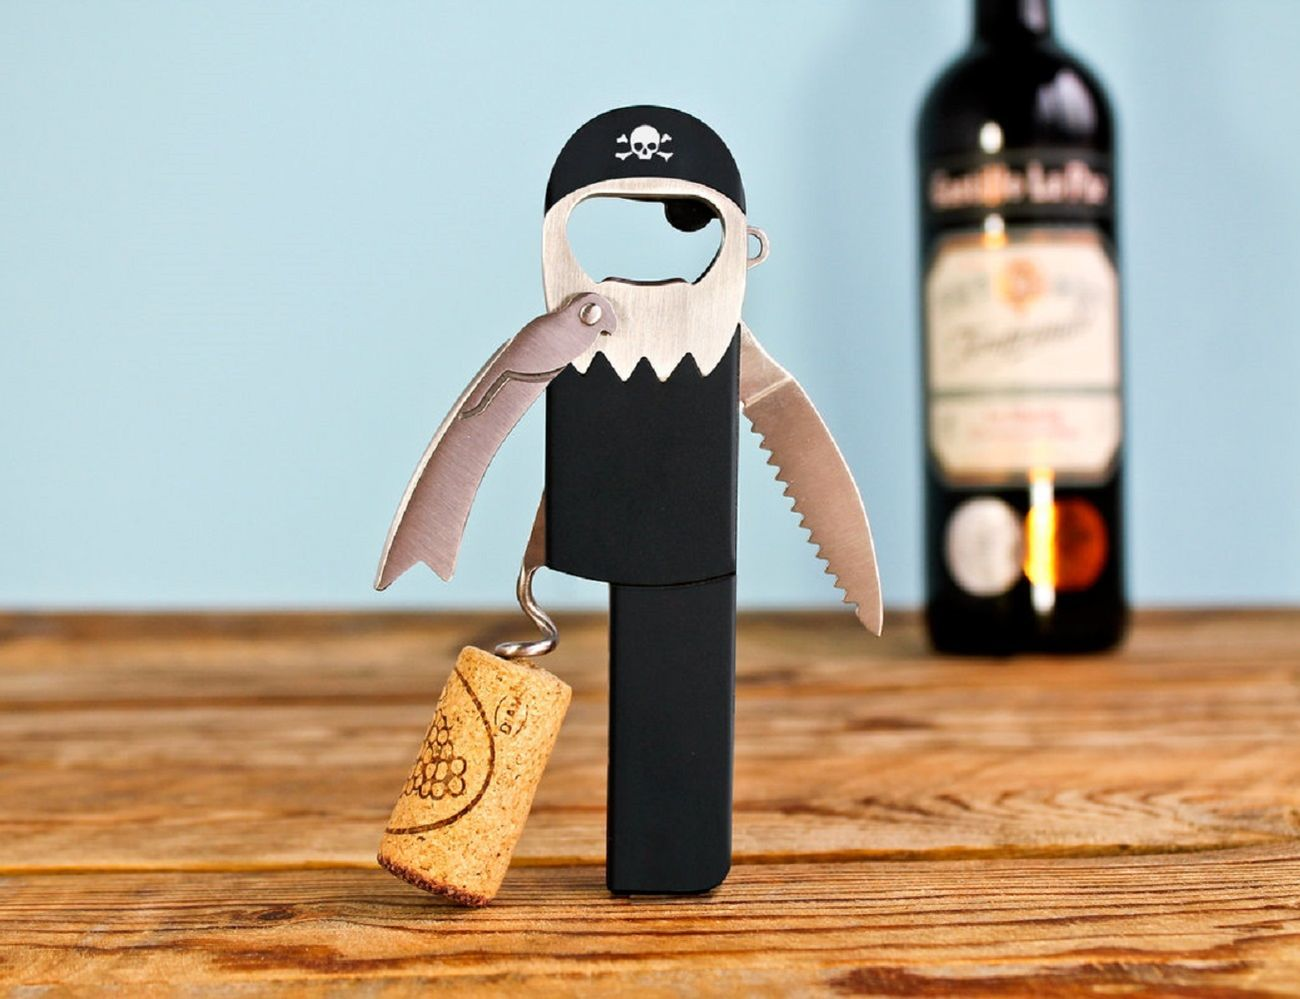 Pirate Corkscrew From Suck UK